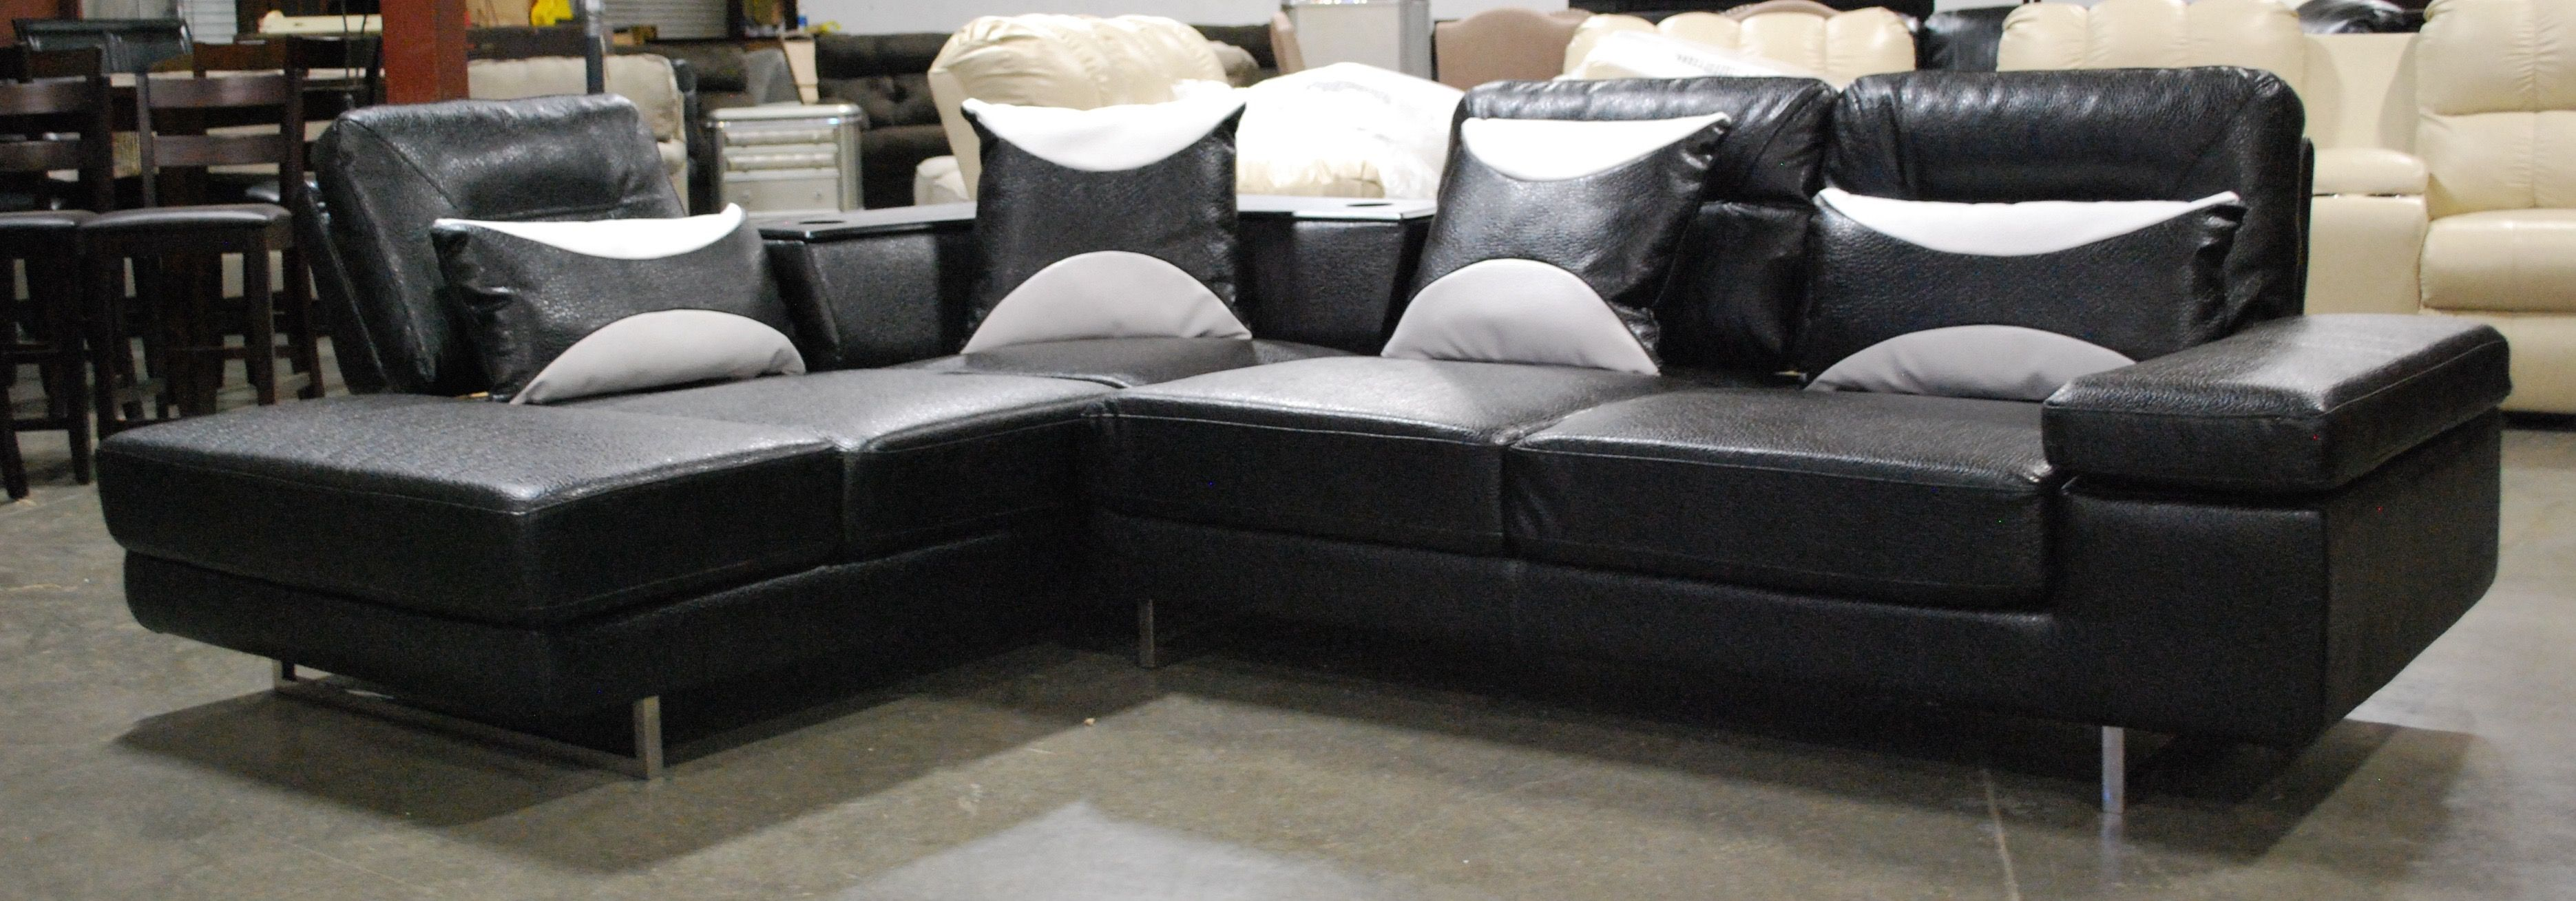 Contemporary Black Sectional With Images Furniture Prices